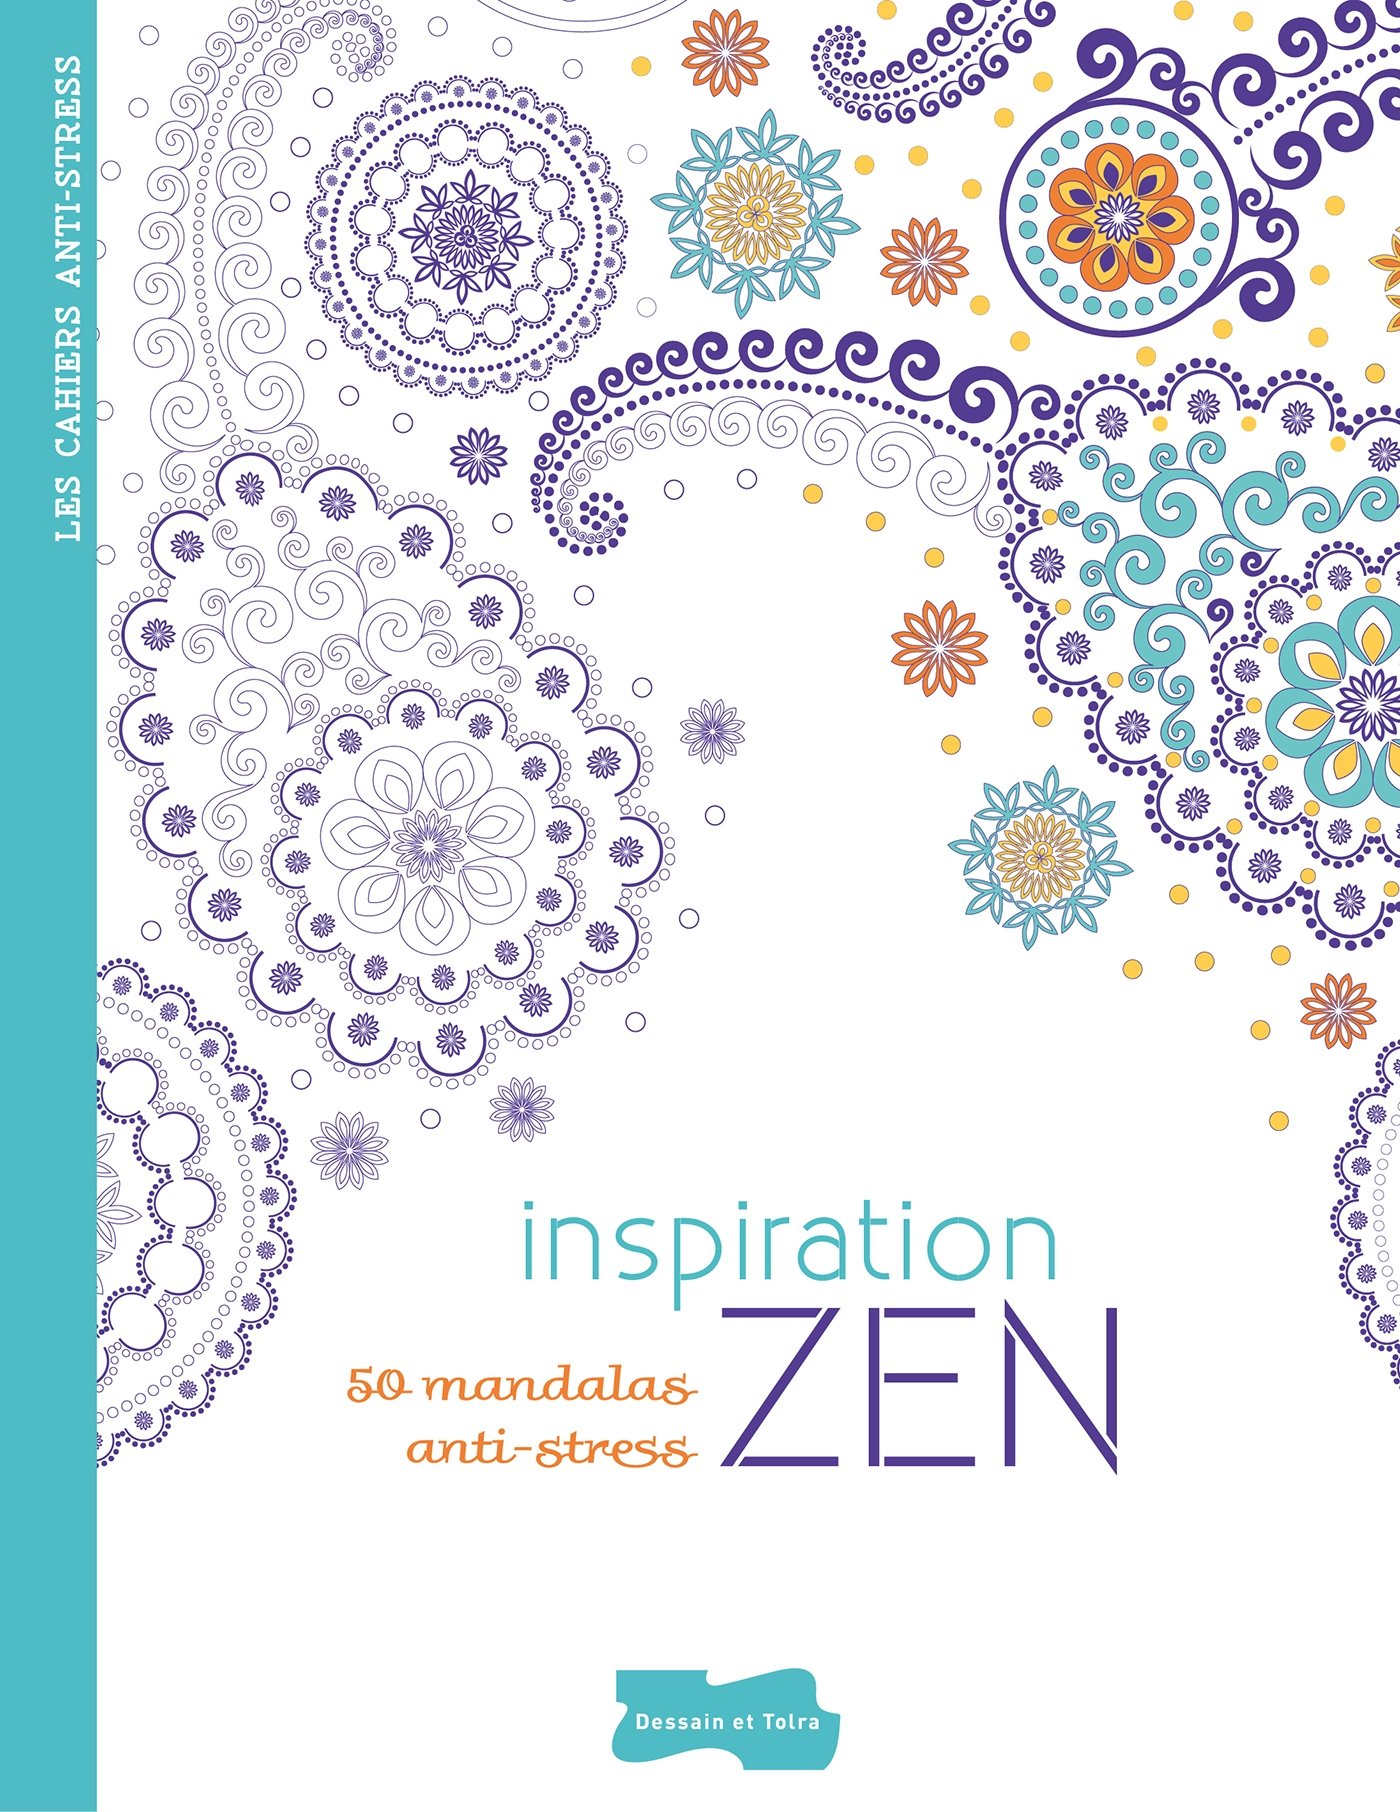 http://www.amazon.it/Inspiration-zen-50-mandalas-anti-stress/dp/2295004624/ref=pd_bxgy_14_img_2?ie=UTF8&refRID=1WKZBGA077NNVS7SWJMK